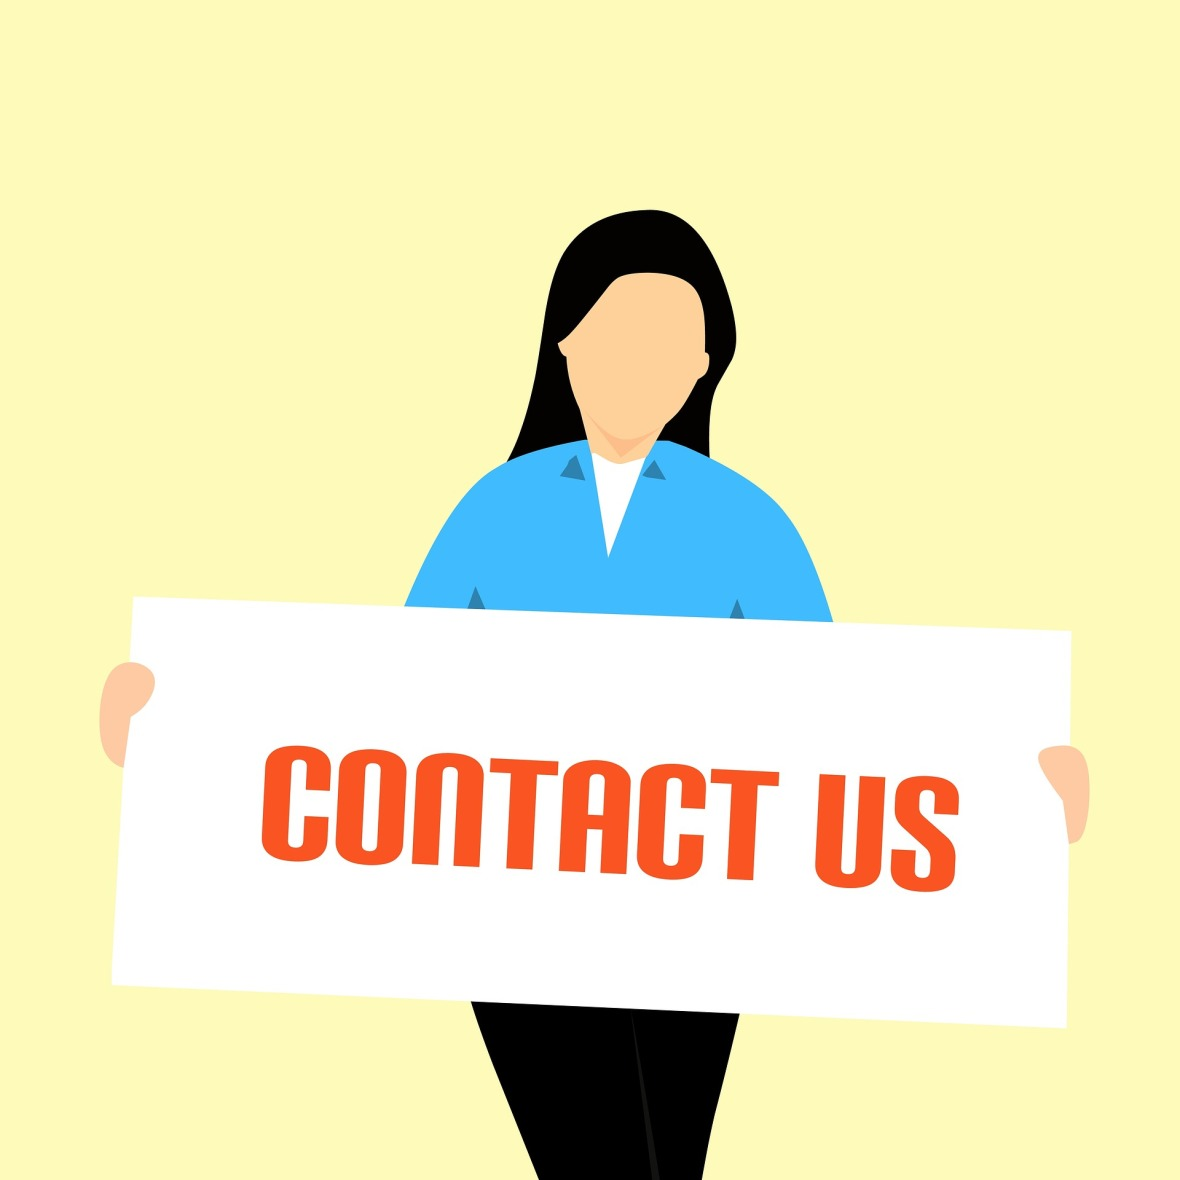 Contact Us | Helpline for ICSE Students (Class 10) @icsehelpline